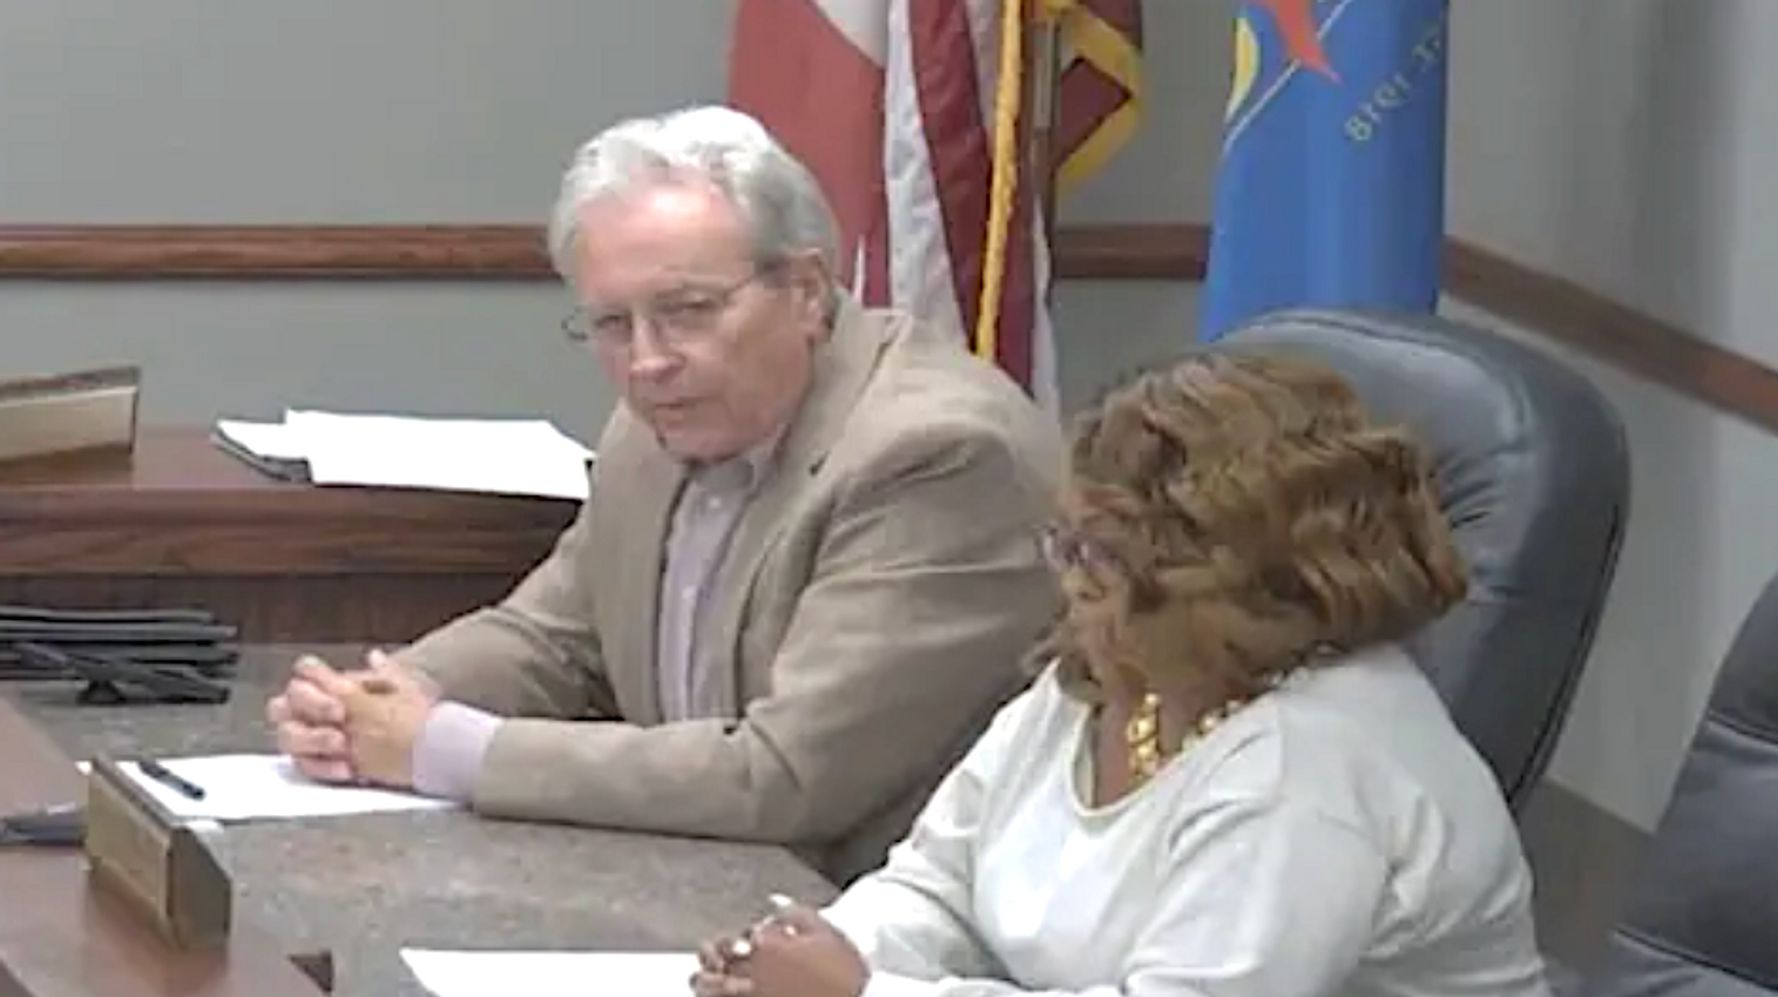 Alabama Council Member Tommy Bryant Utters Stunning Racist Slur In Meeting